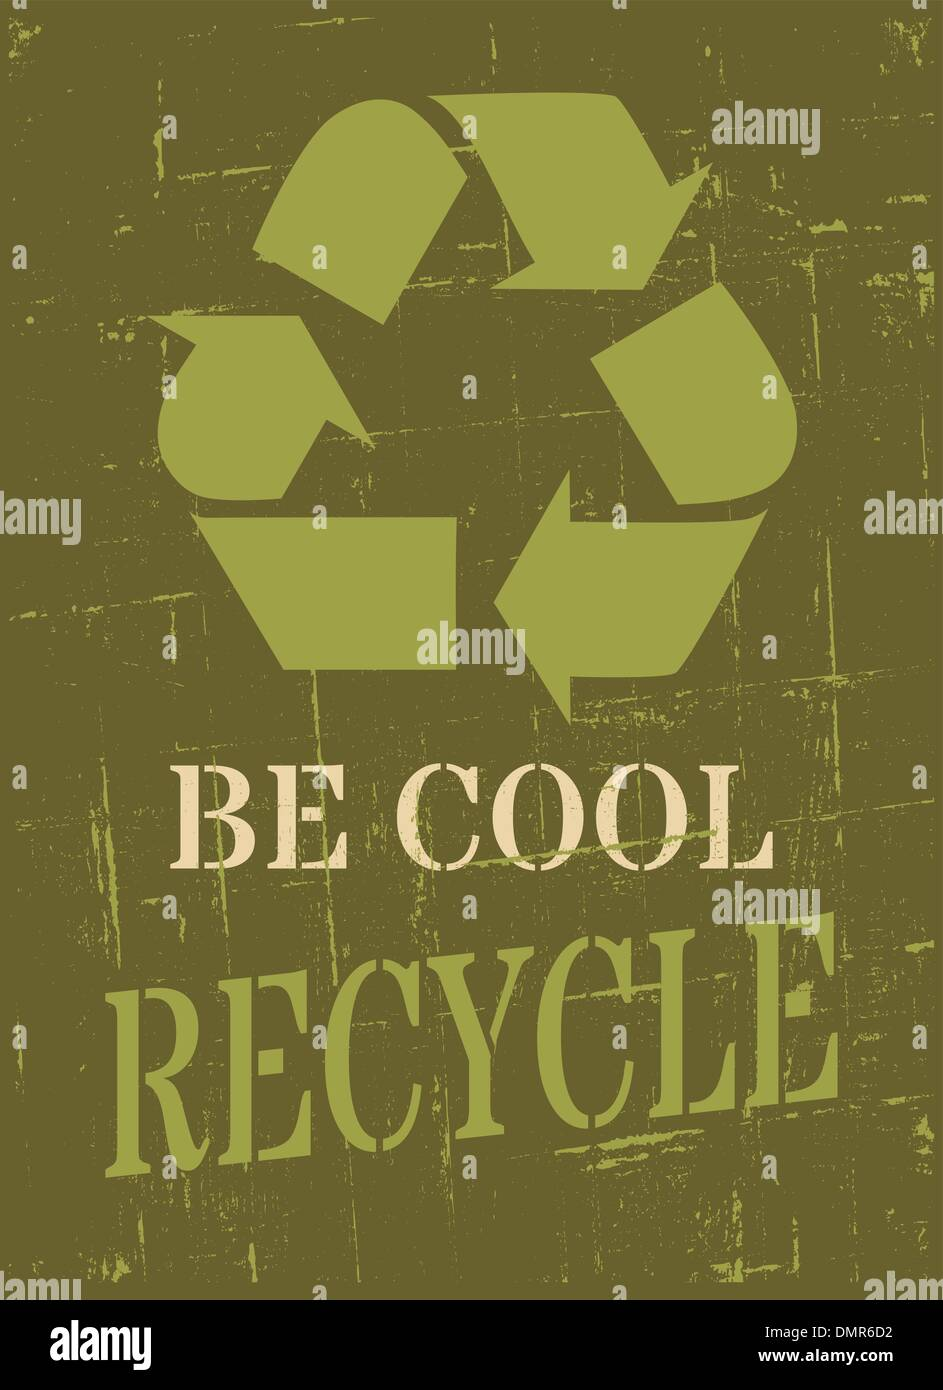 Recycle Symbol Poster - Stock Image